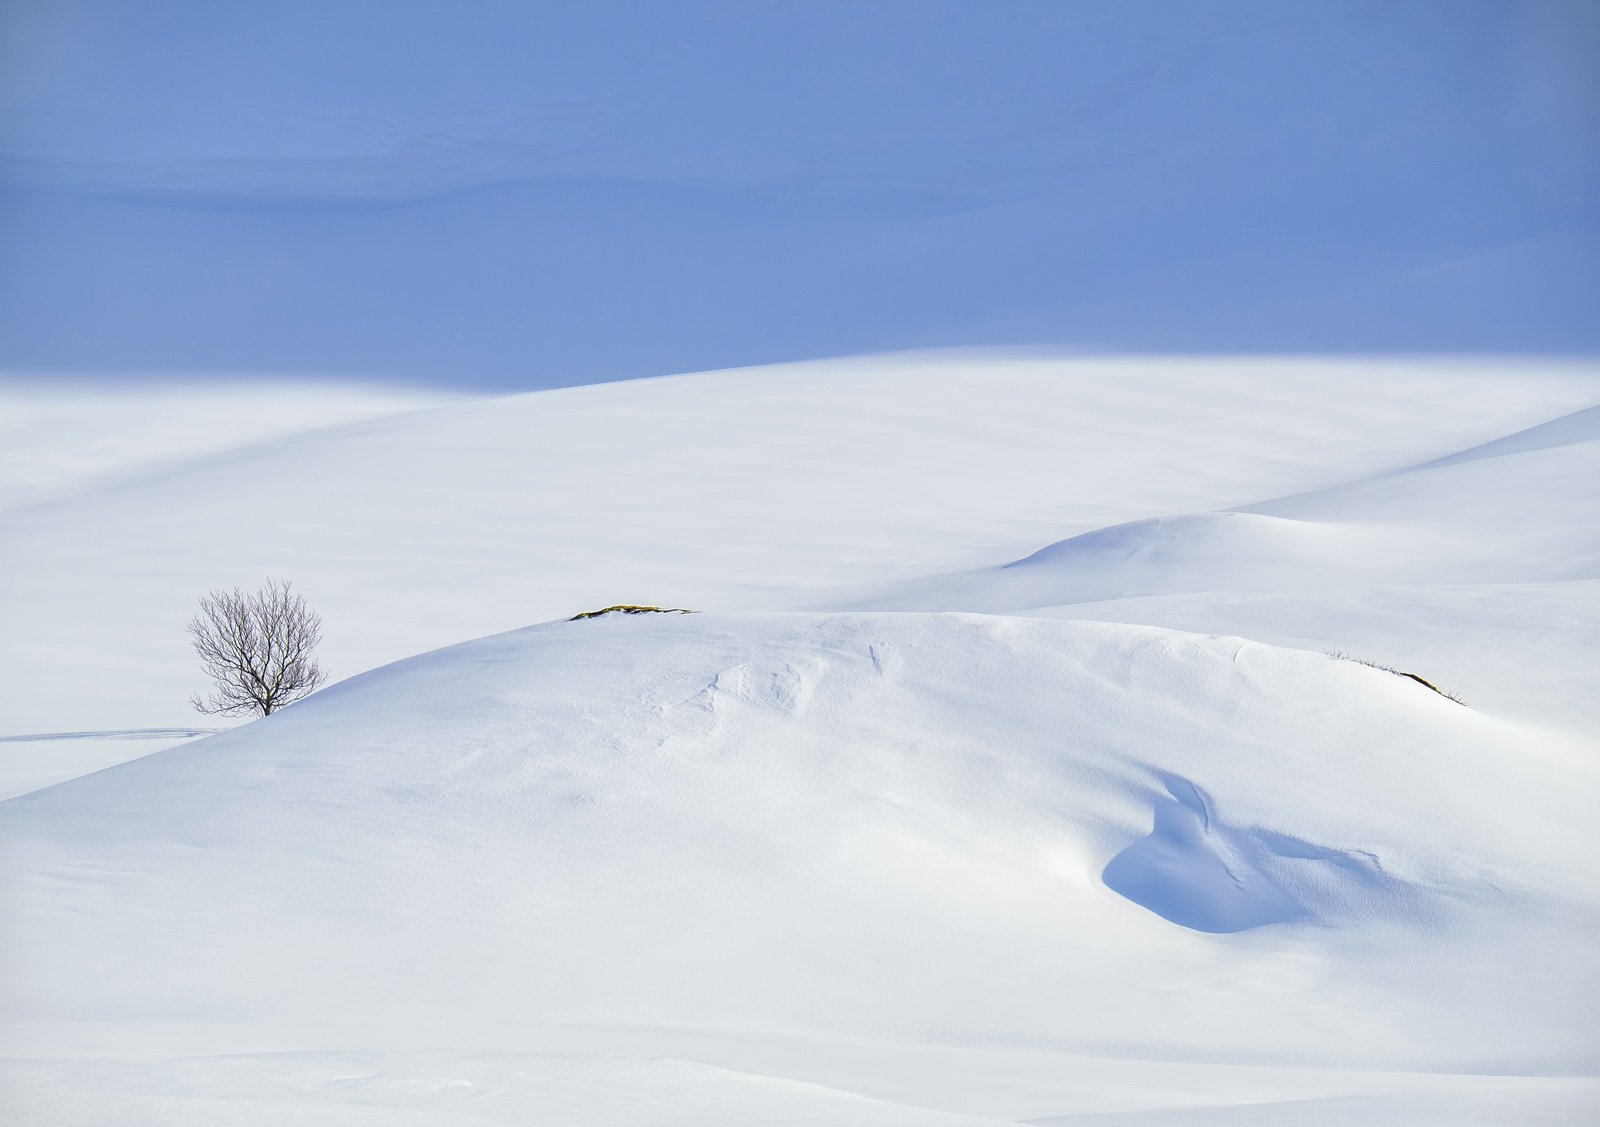 Art Of Snow 9, Anderdalen Nat Park, Senja, Norway, blue, mountainous, plateau, snow, birch, trees, purity, light, bumps , photo